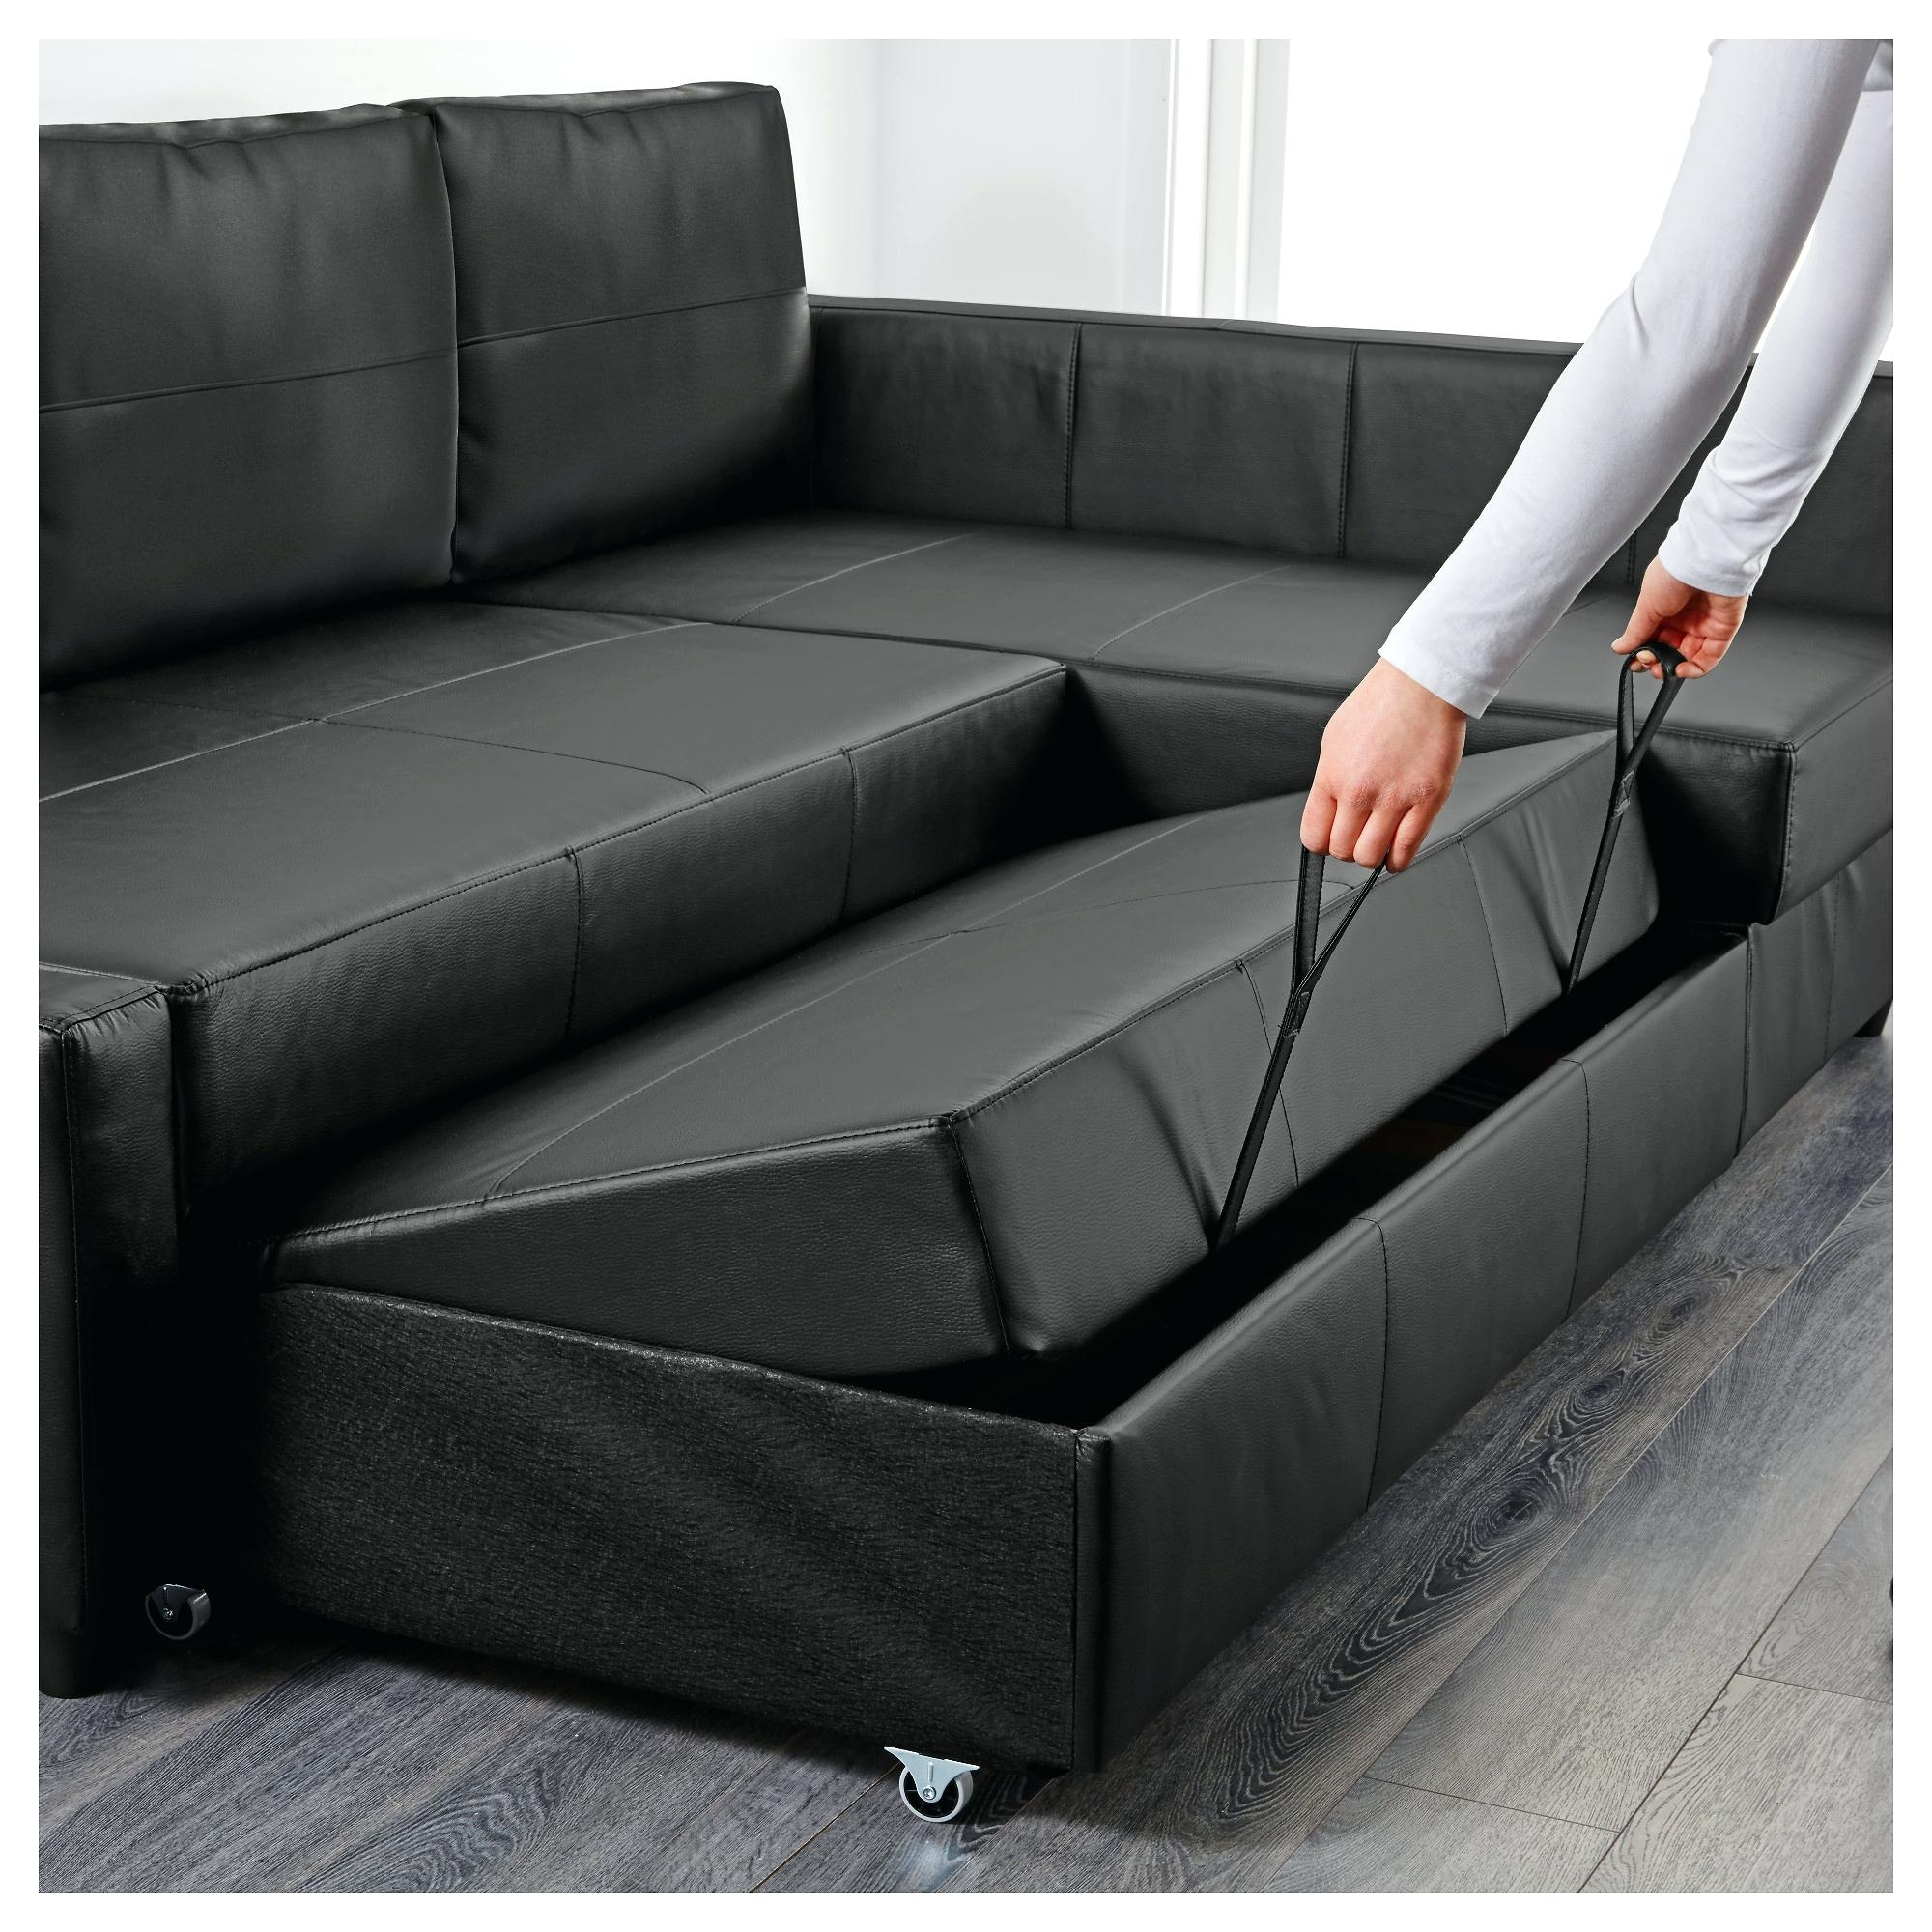 Sectional Sofa Bed Halifax – Adriane With Regard To Most Recent Halifax Sectional Sofas (View 8 of 15)